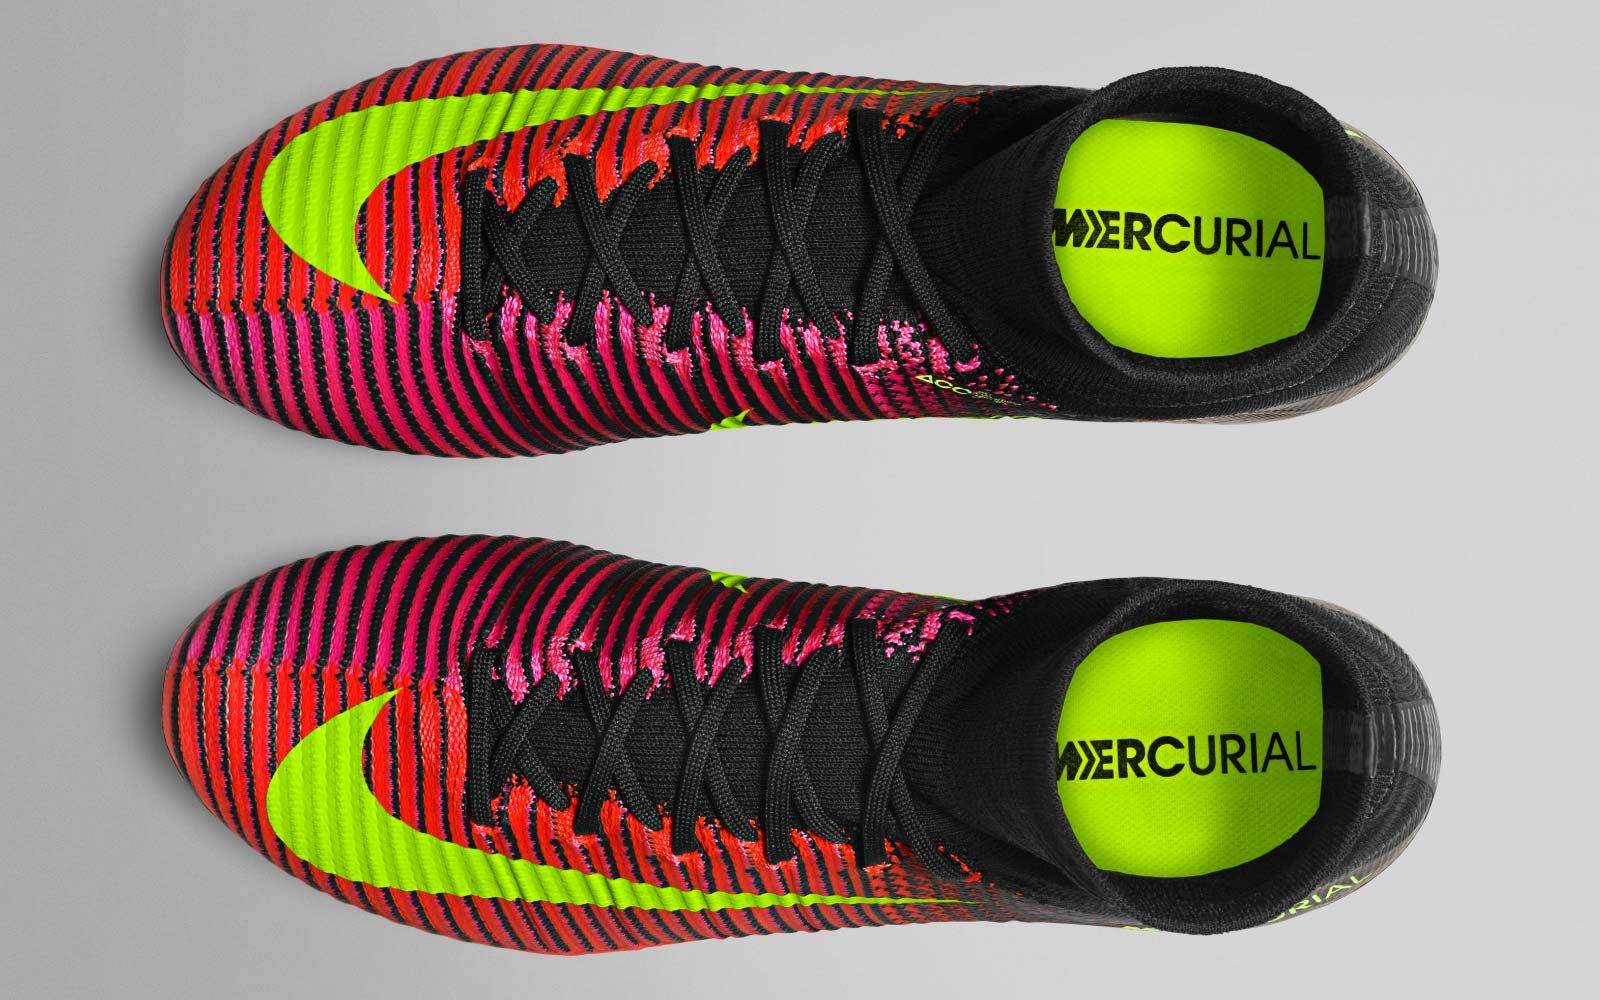 The new Nike Spark Brilliance football boot collection introduces utterly  bold colors to be worn at Euro 2016 in France next month. 98159164813ed